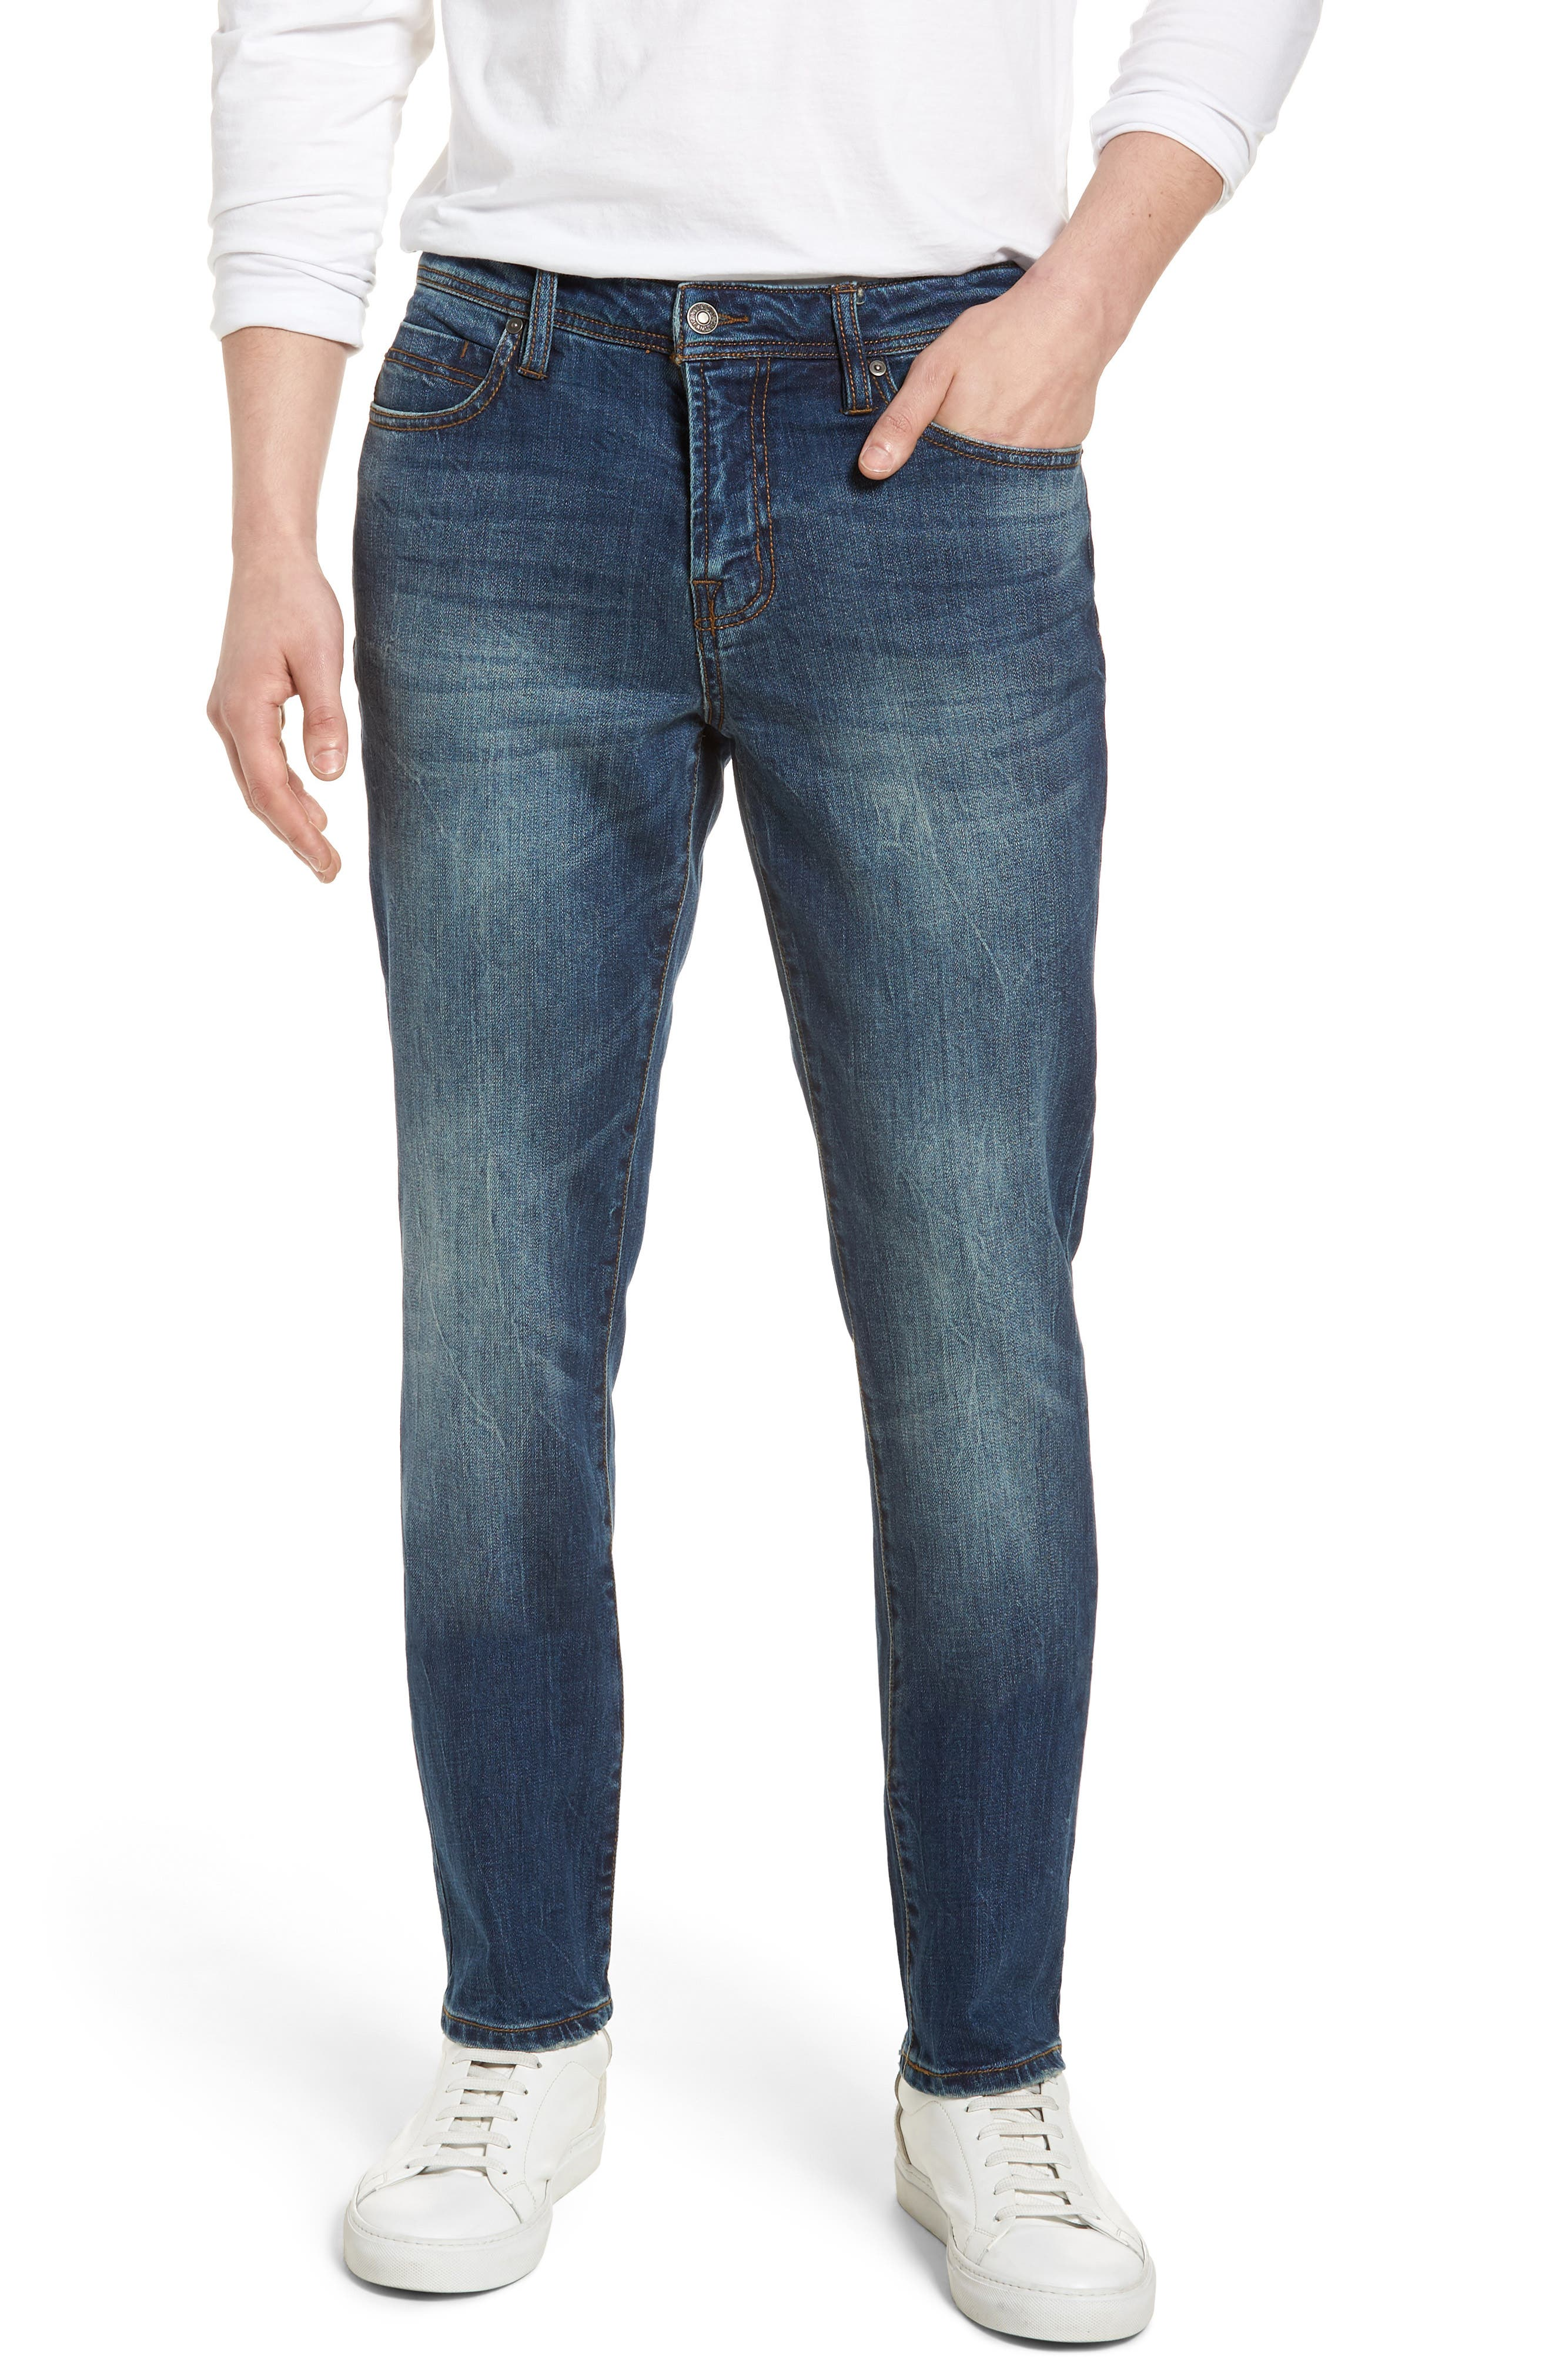 Jeans Co. Kingston Slim Straight Leg Jeans,                         Main,                         color, Odessa Vintage Dark